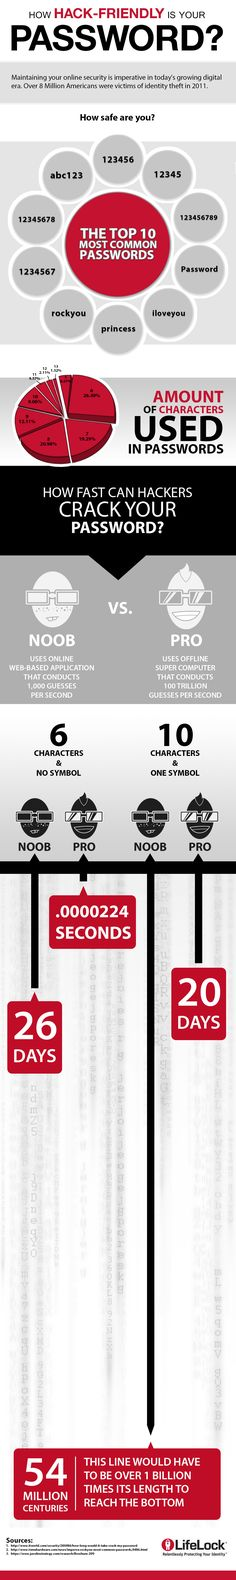 How safe is your password? #infografia #infographic #internet - good reminder to give them a rethink eh!